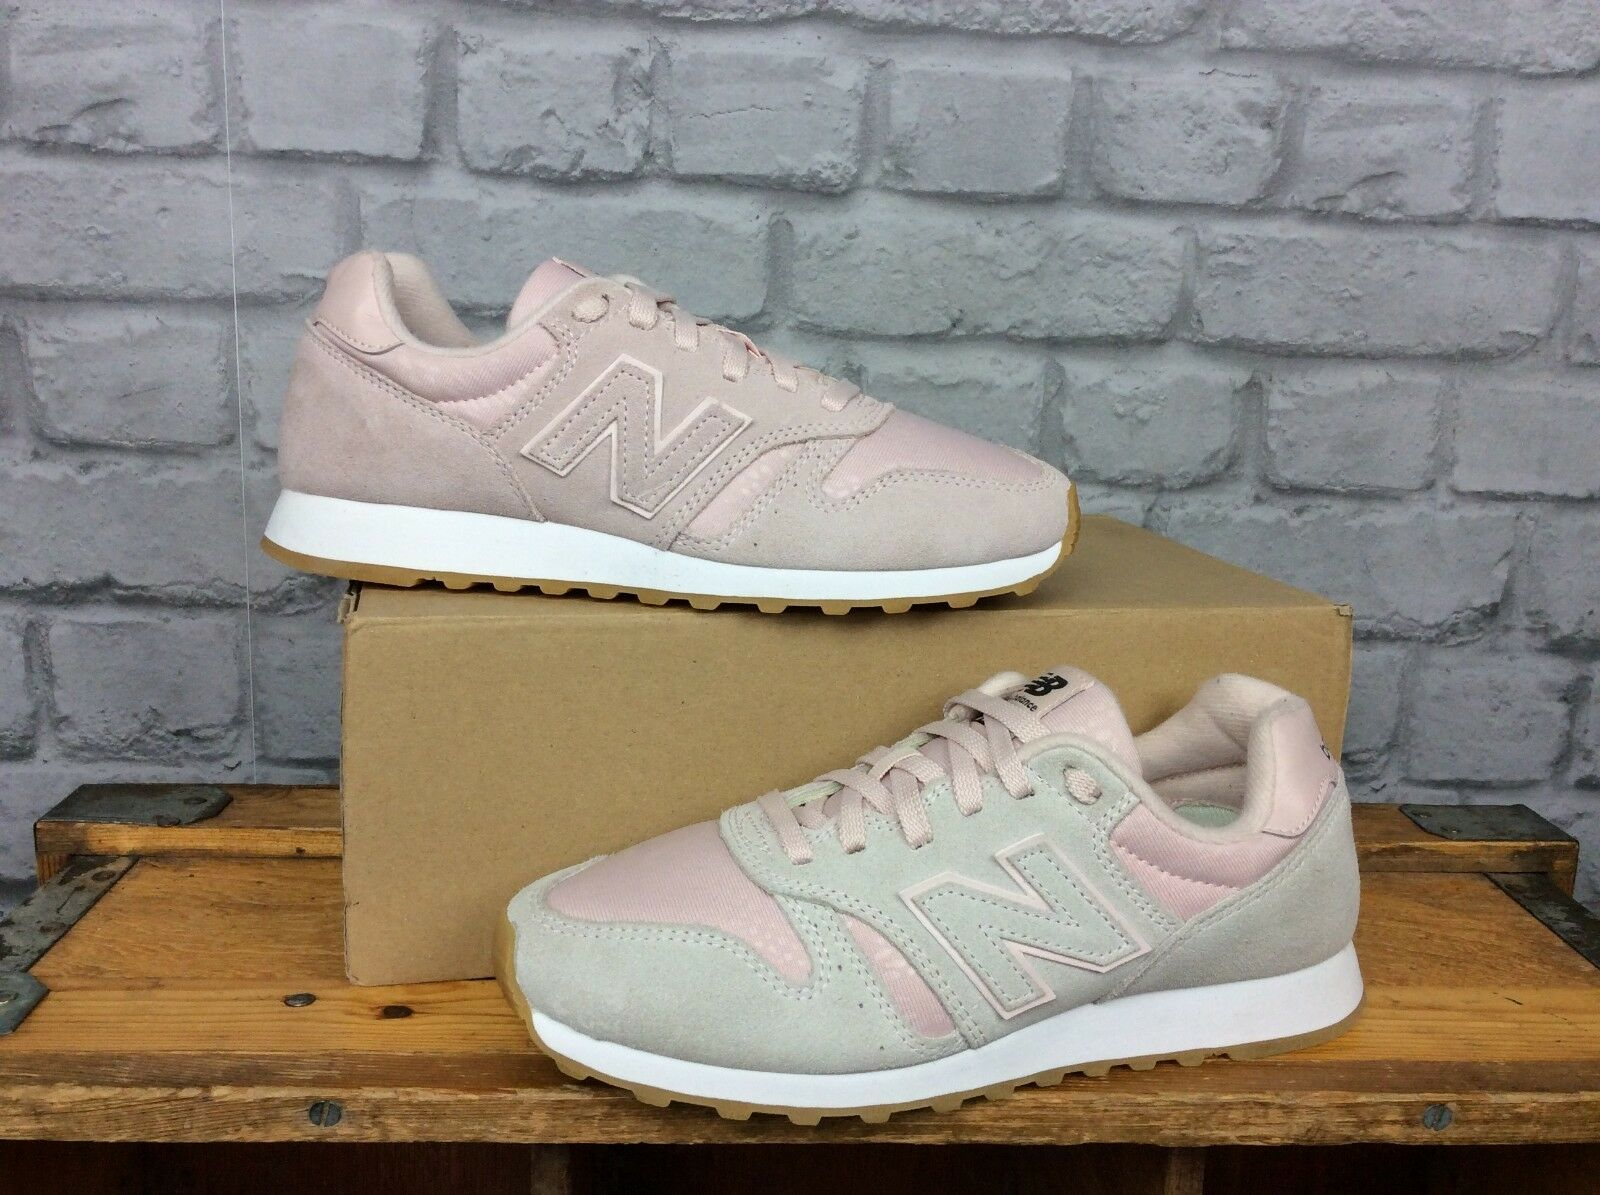 NEW BALANCE 373 LADIES PINK WHITE TRAINERS SUEDE